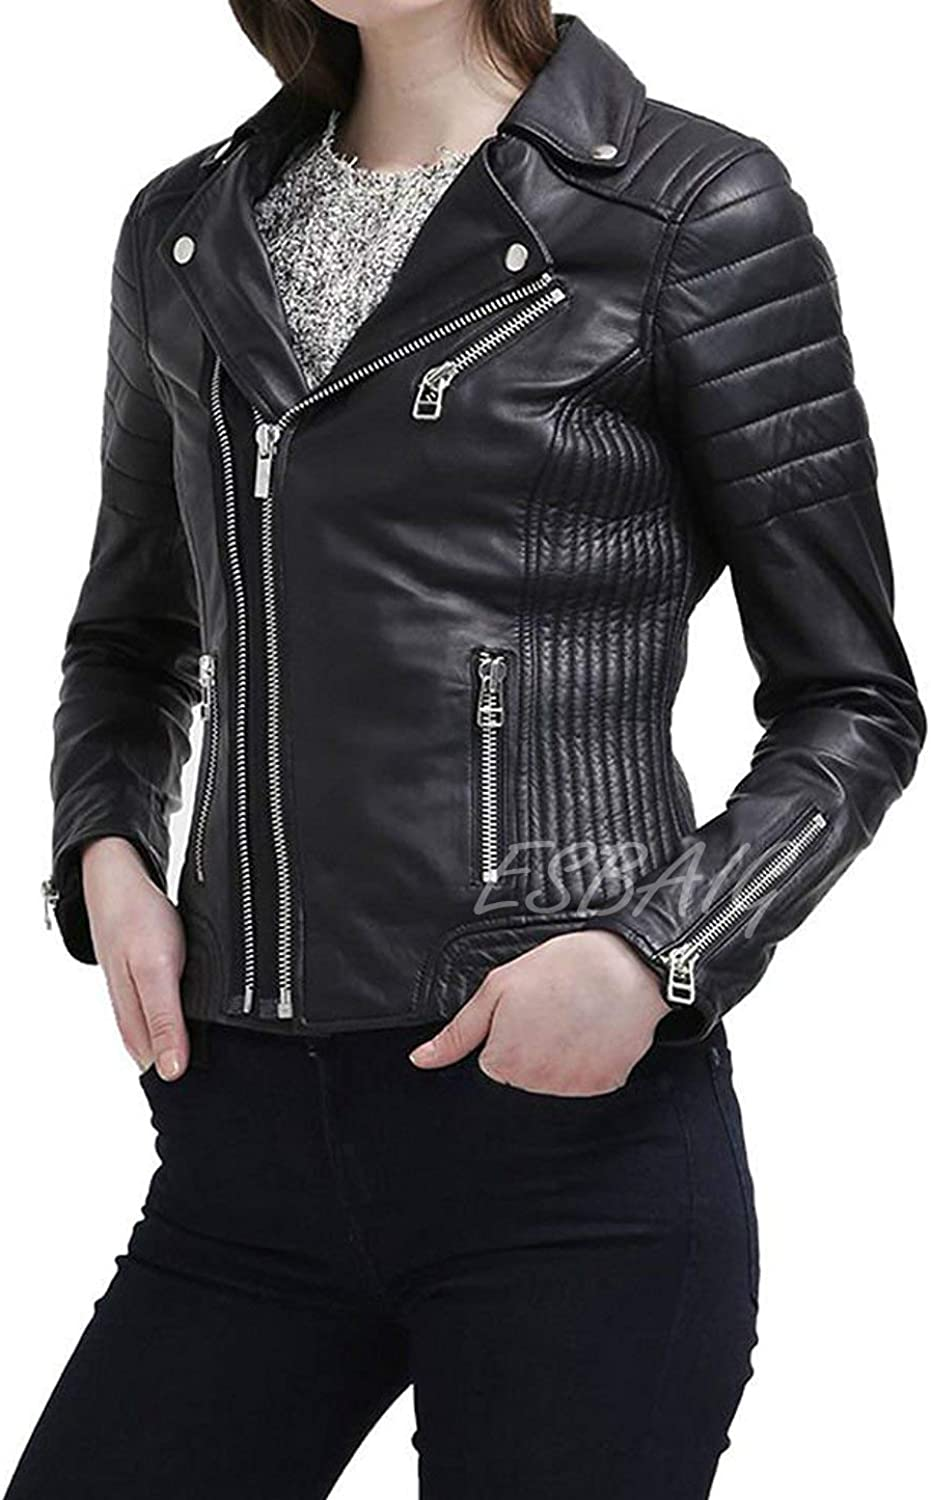 ESBAIG Womens Leather Jackets Stylish Motorcycle Bomber Biker Real Lambskin Leather Jacket for Women 516